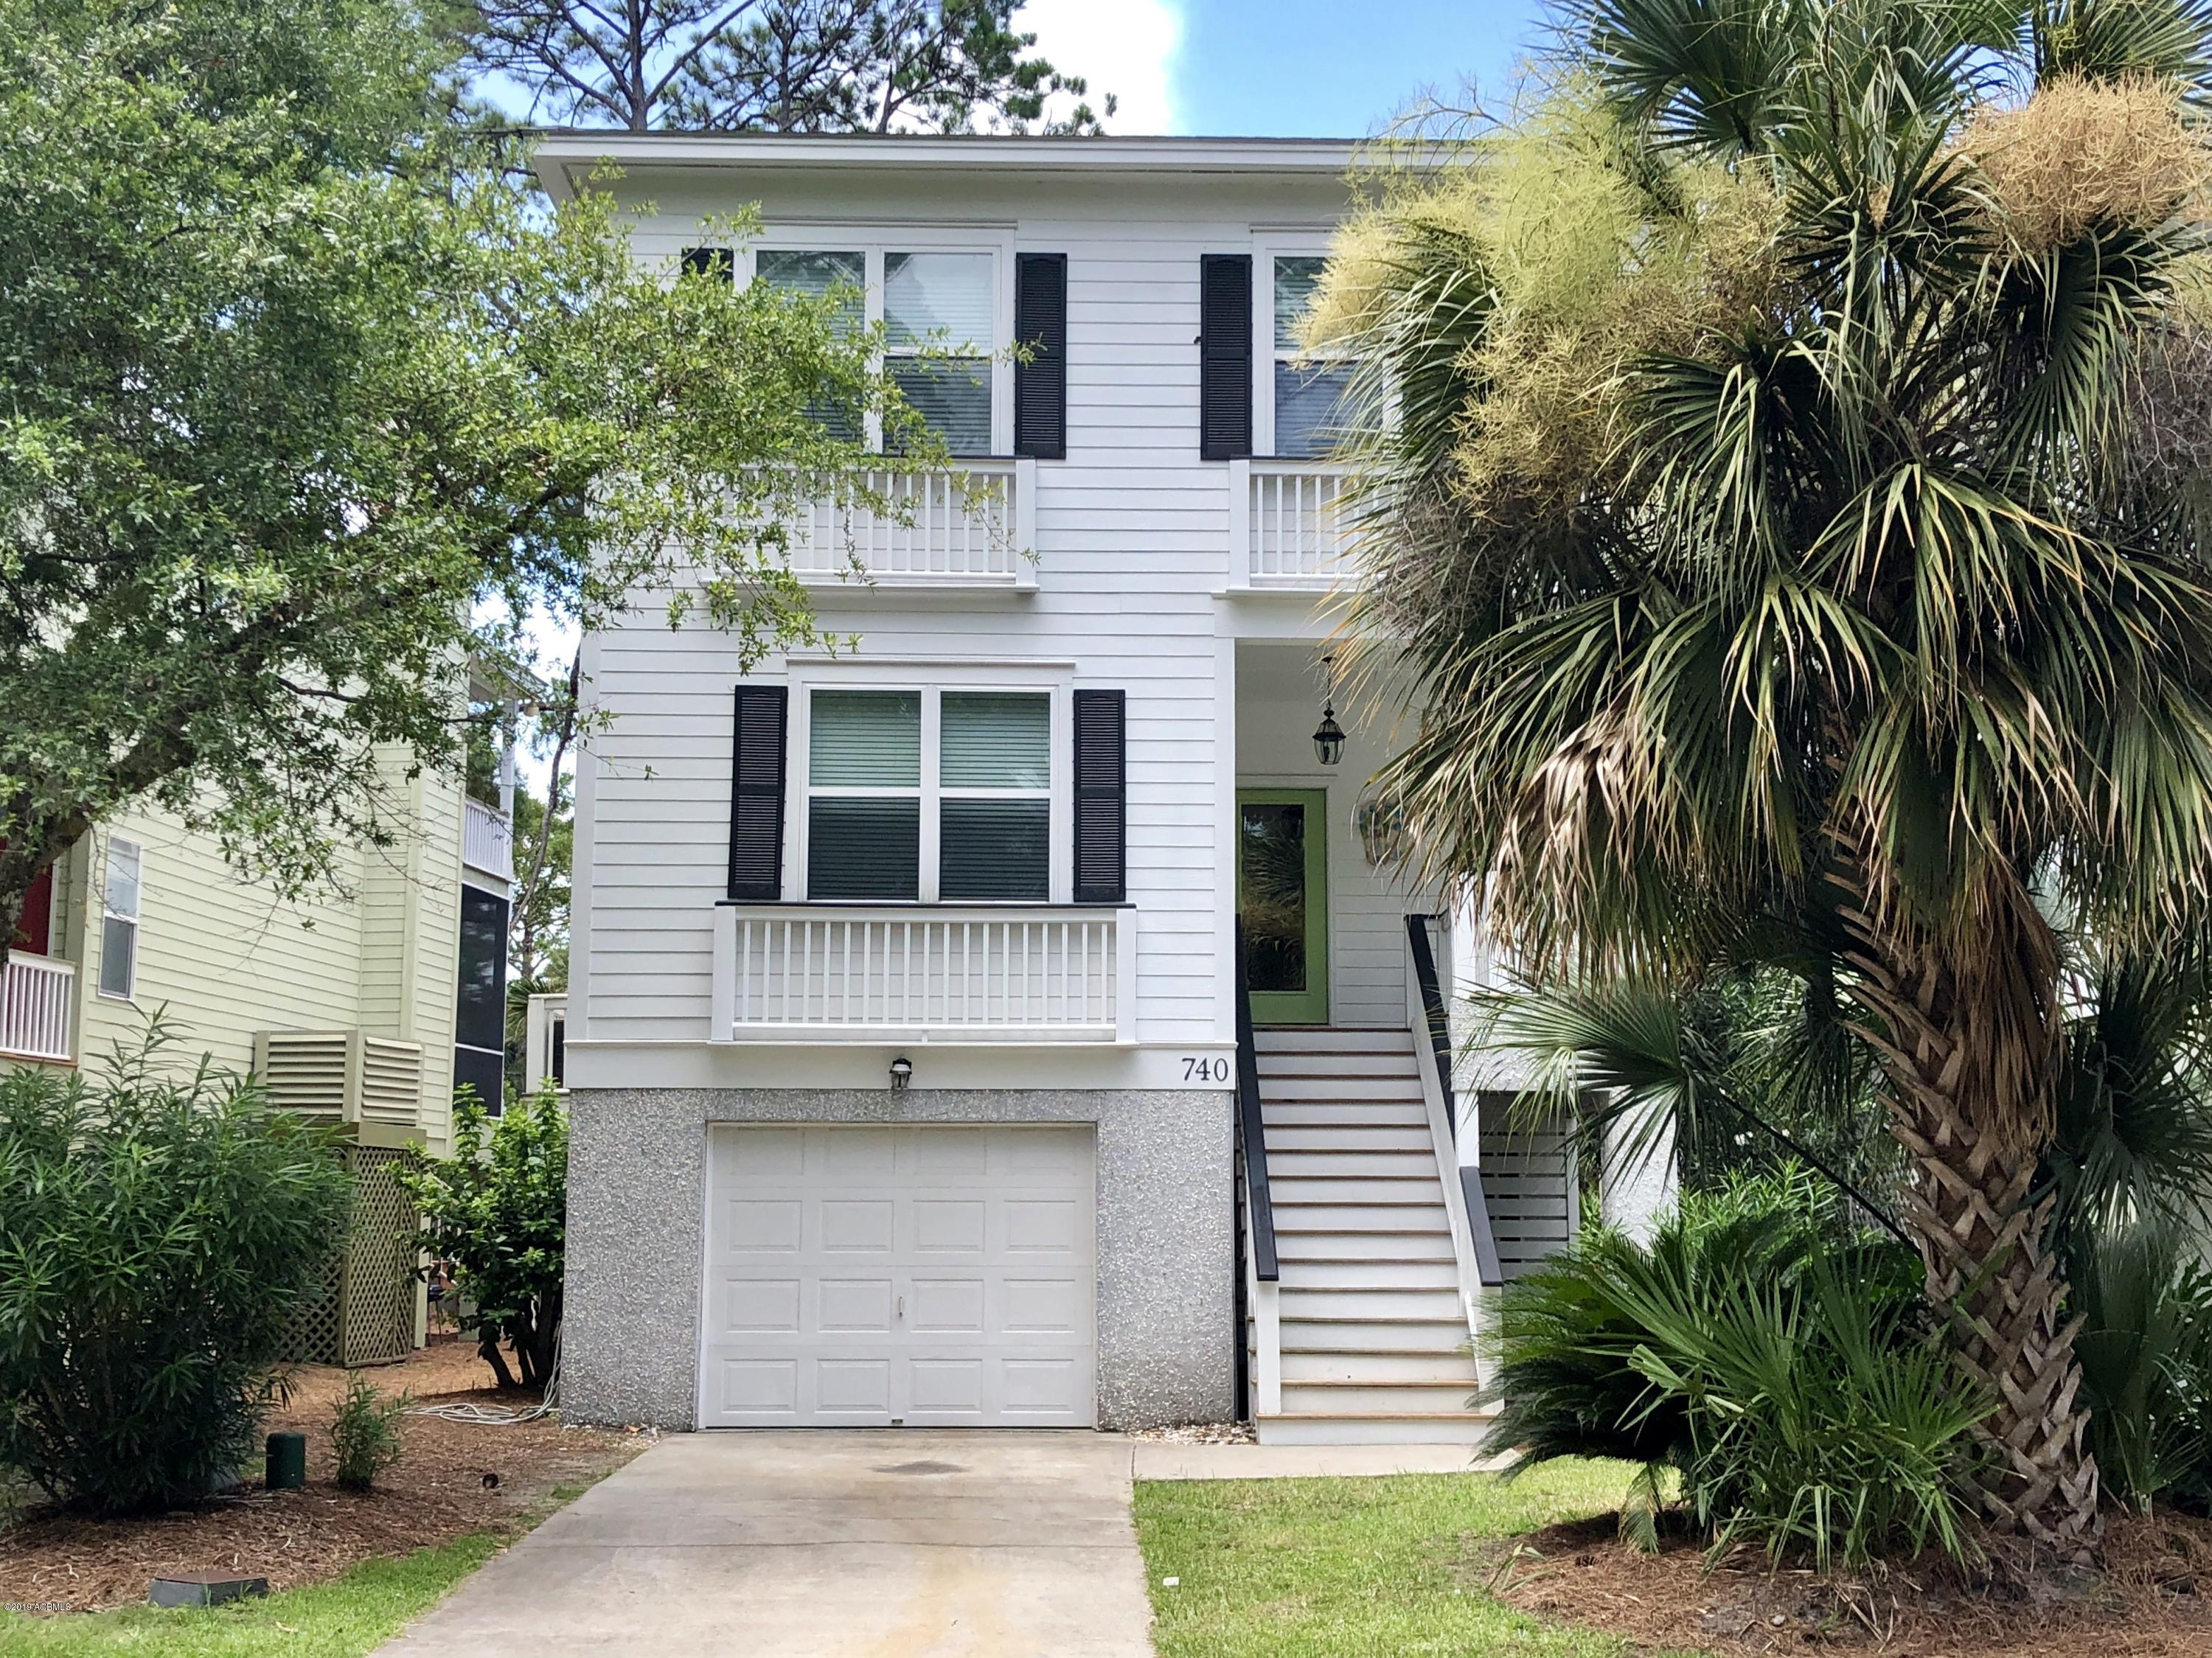 Photo of 740 Bonito Road - 20% Share, Fripp Island, SC 29920